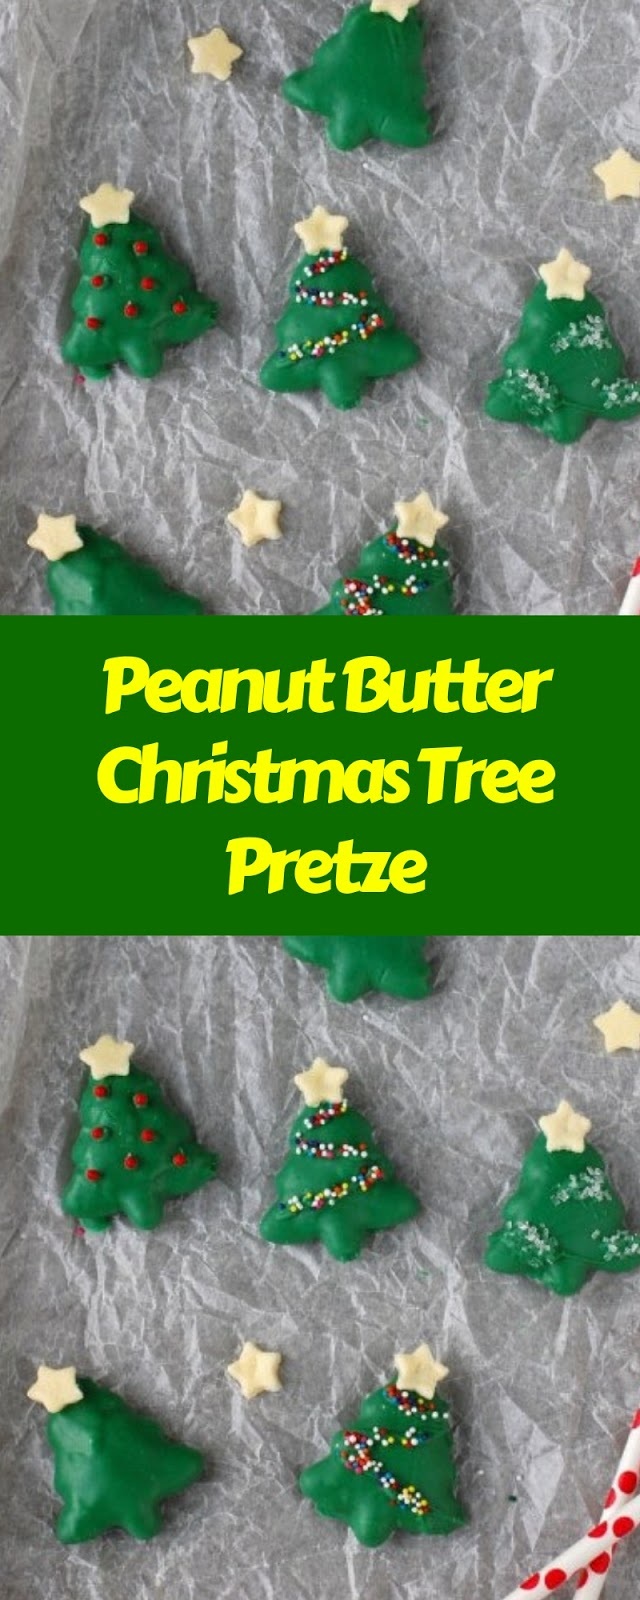 Peanut Butter Christmas Tree Pretze